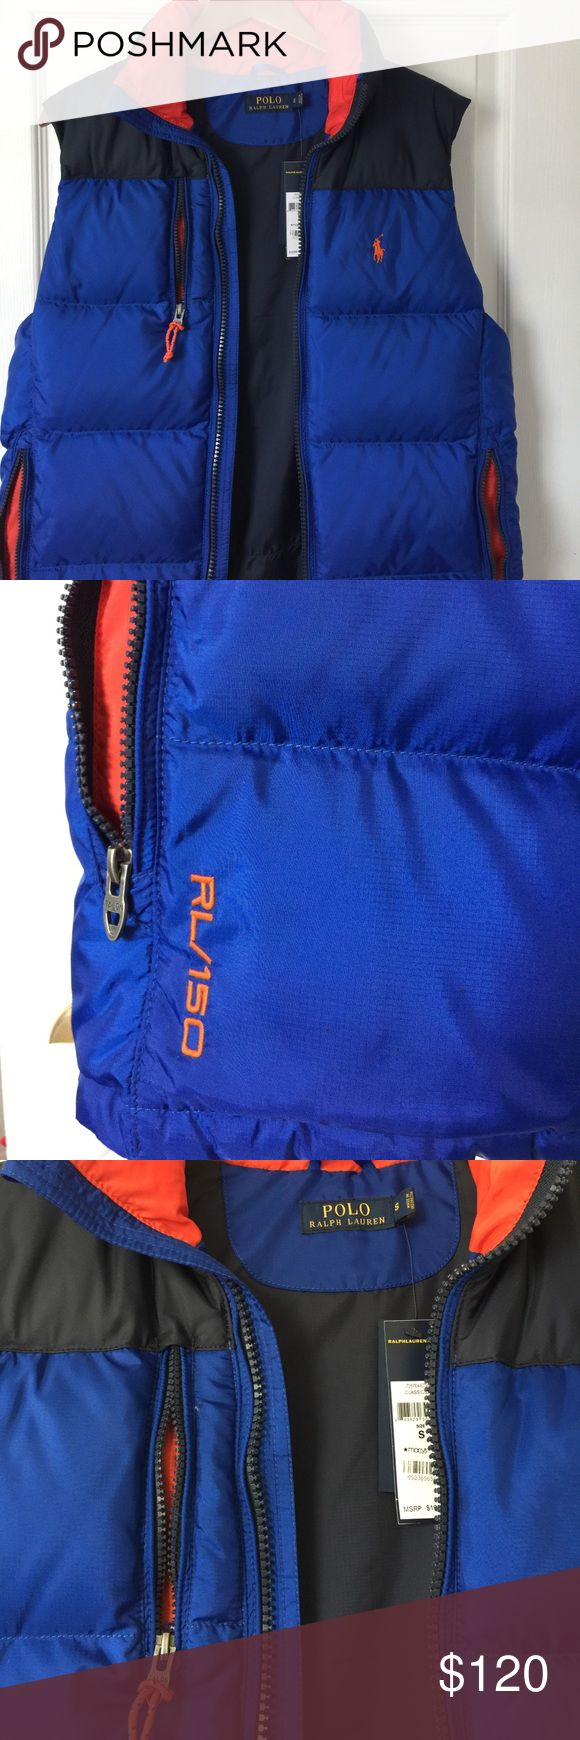 NWT Men's Puffer Vest Ralph Lauren Polo Winter vest, never worn. Has inside pocket and corded interior drawstring. Kept in a smoke/pet free household. Polo by Ralph Lauren Jackets & Coats Puffers